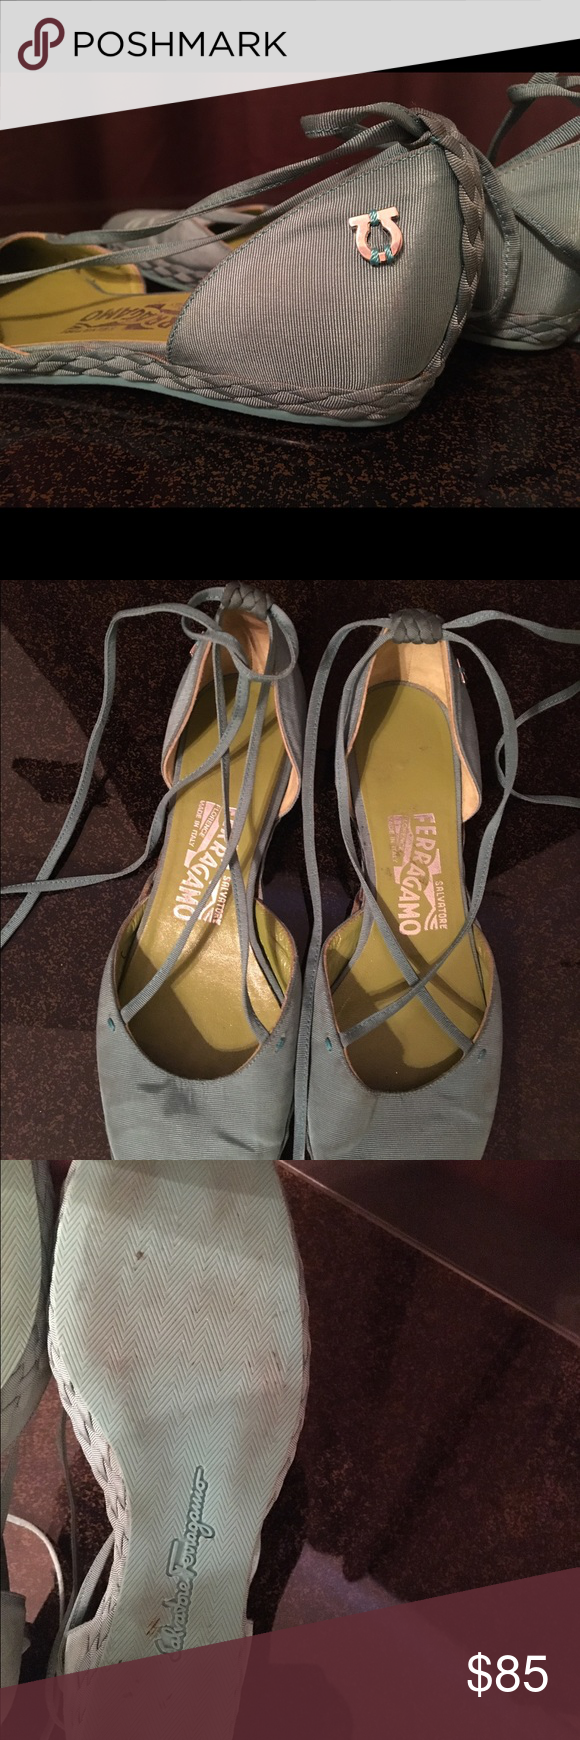 Salvatore Ferragamo lace up flats Reposh Salvatore Ferragamo lace up flats, these are made in Florence Italy and are absolutely gorgeous, I almost cried when I tried them on and they did not fit, true to size, stunning green hue color, pre-loved in great condition. Salvatore Ferragamo Shoes Flats & Loafers